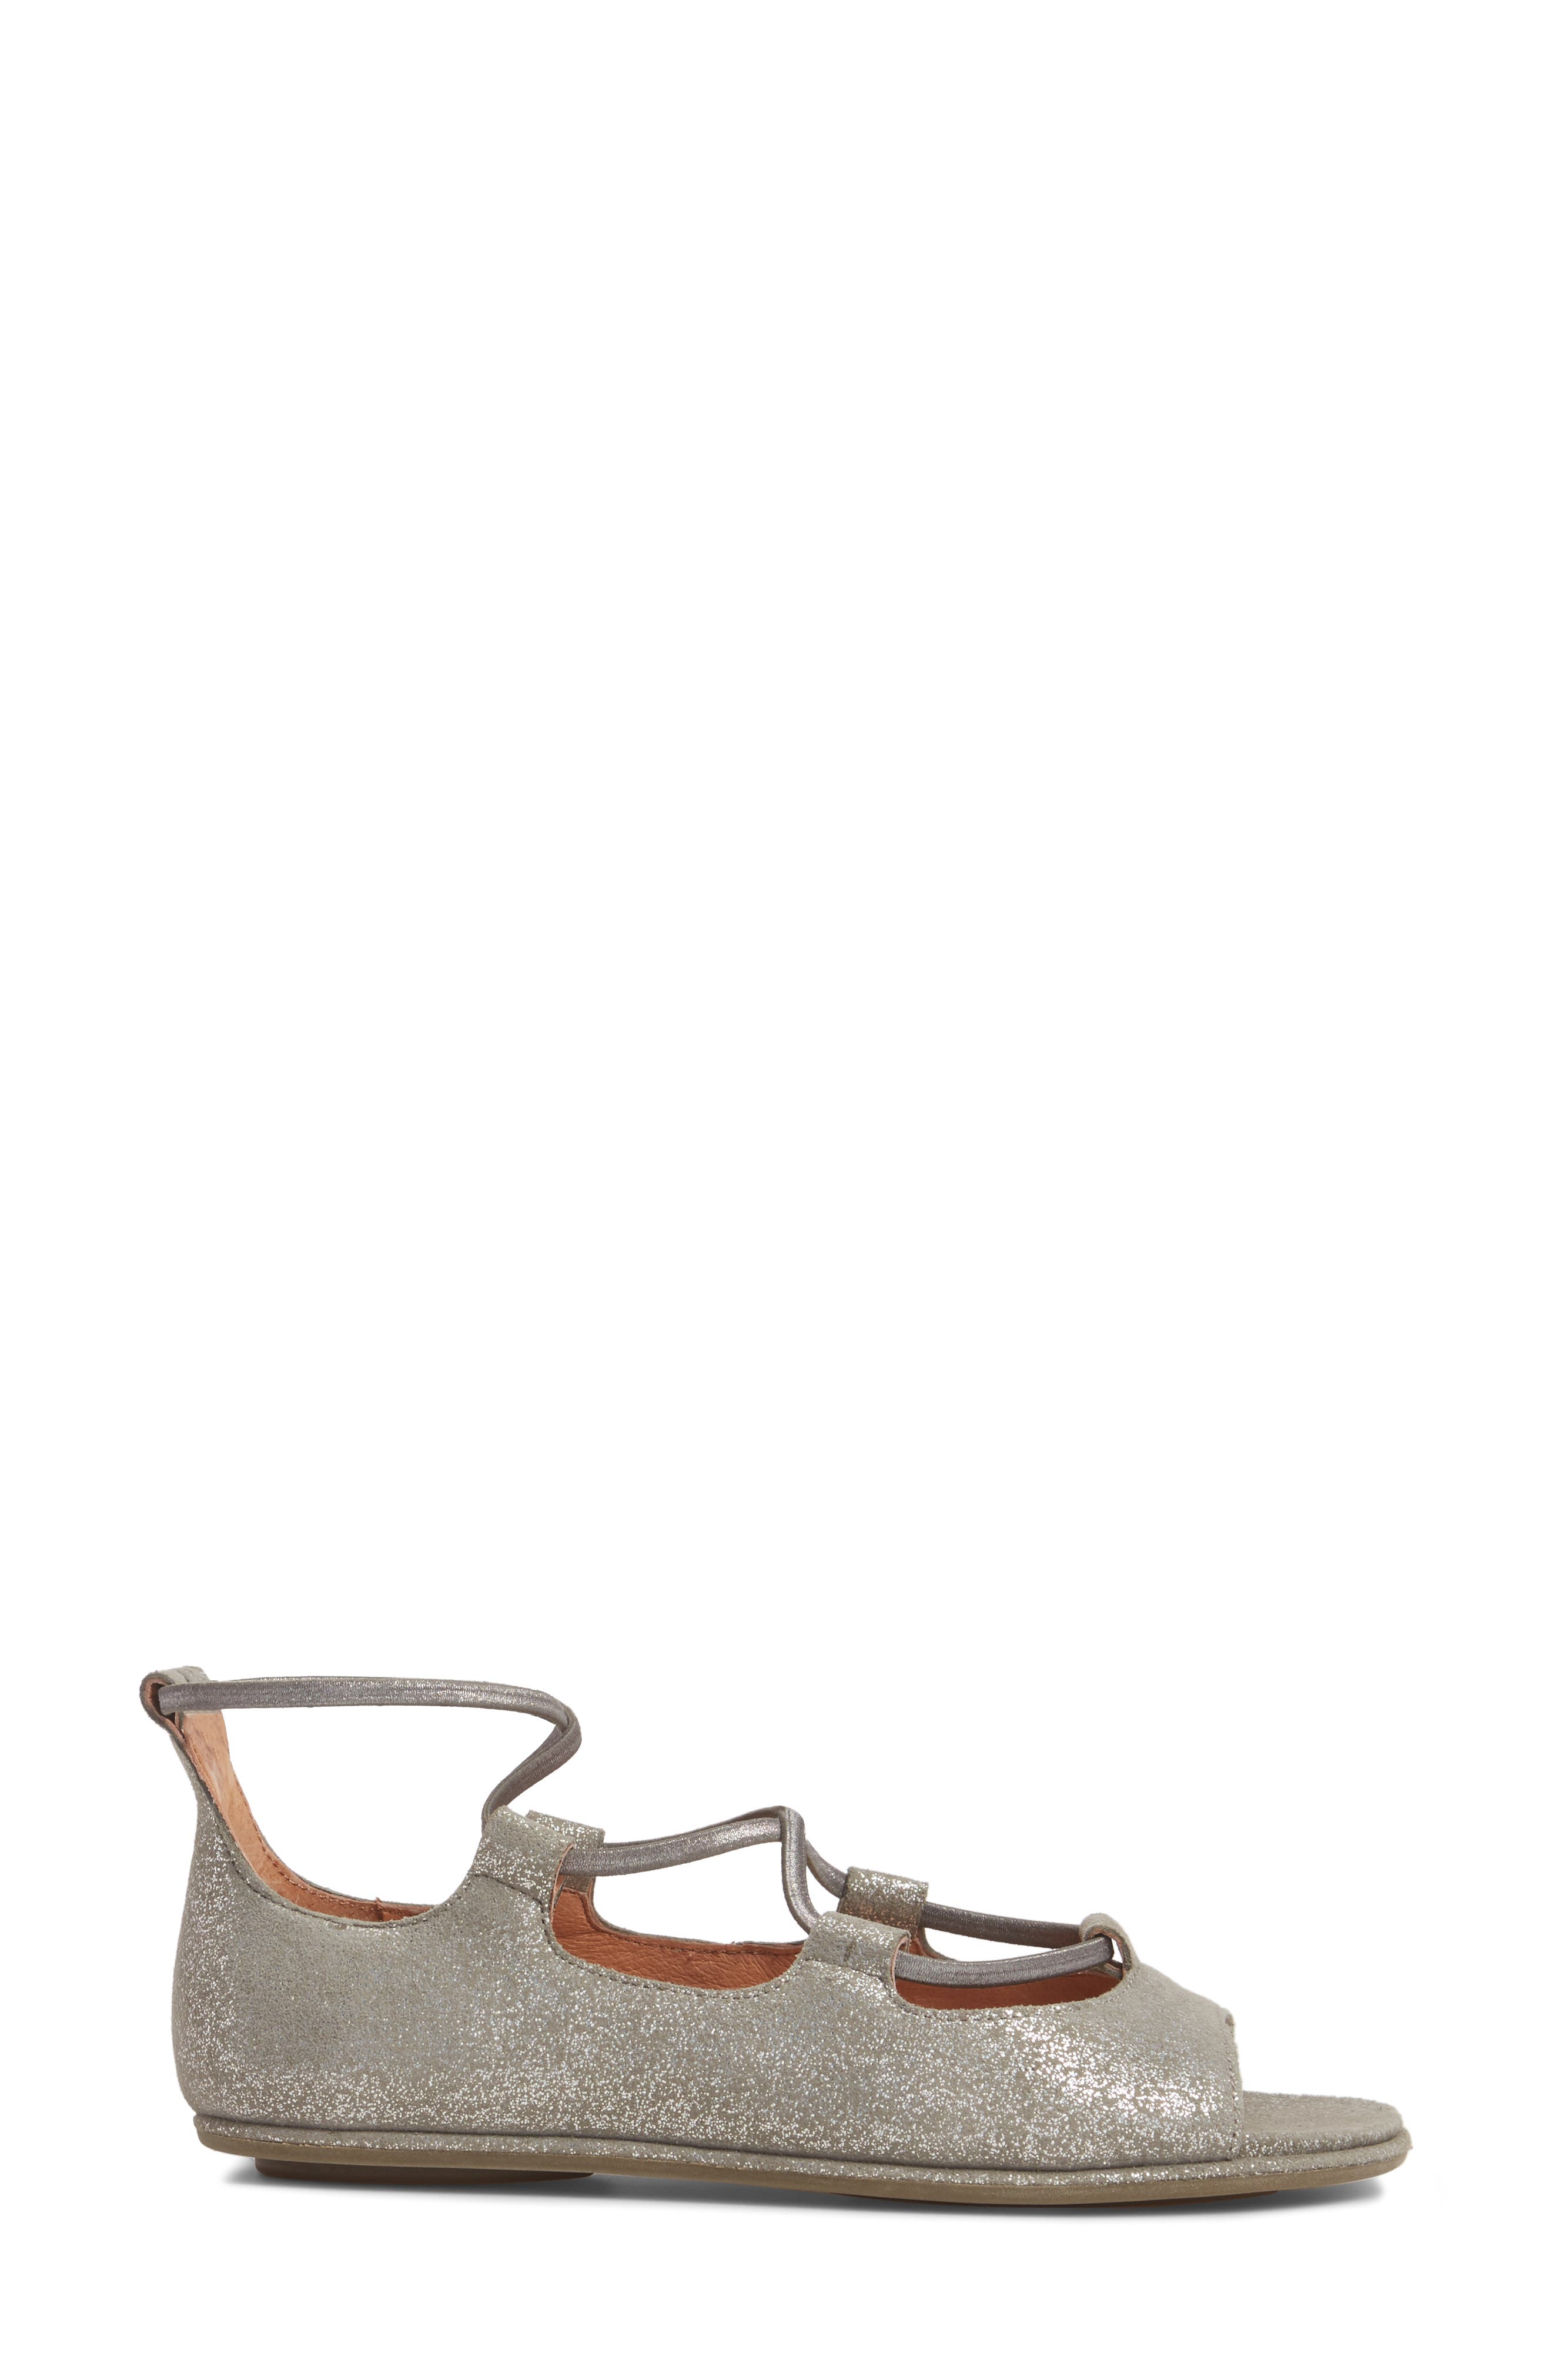 GENTLE SOULS BY KENNETH COLE, Lark Sandal, Alternate thumbnail 3, color, LIGHT PEWTER METALLIC LEATHER